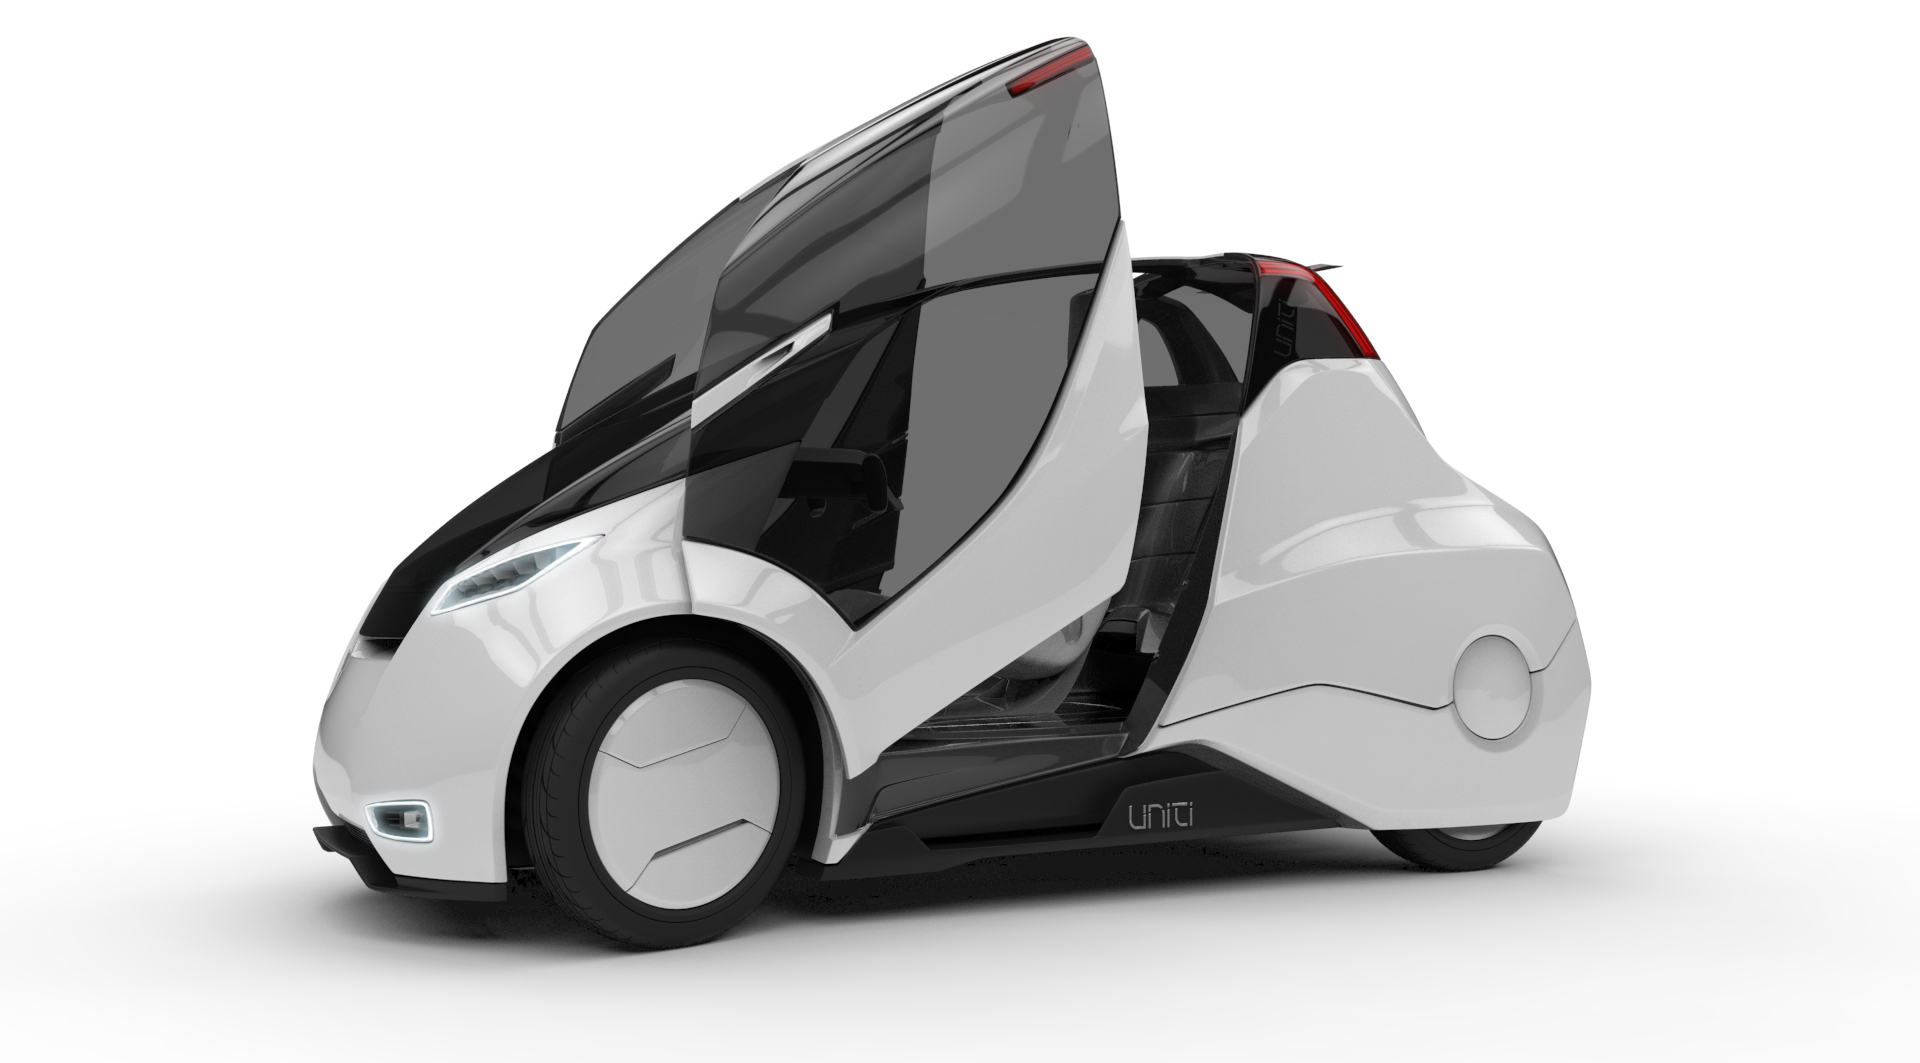 Uniti Uses Crowdfunding to Raise Over 1 Million Dollars for New EV